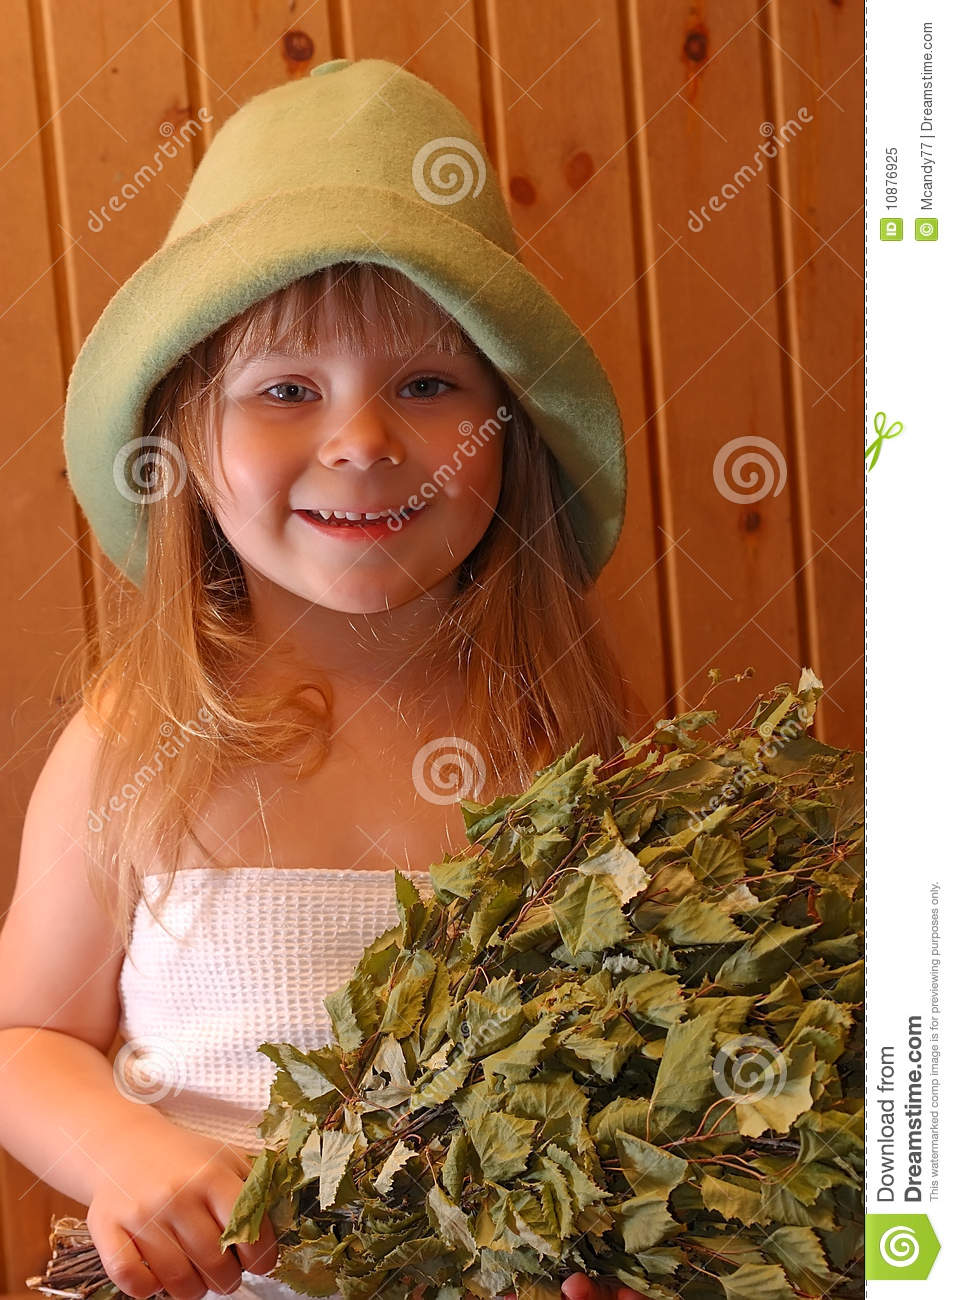 The Little Girl In A Sauna Stock Image Image Of Curative 10876925